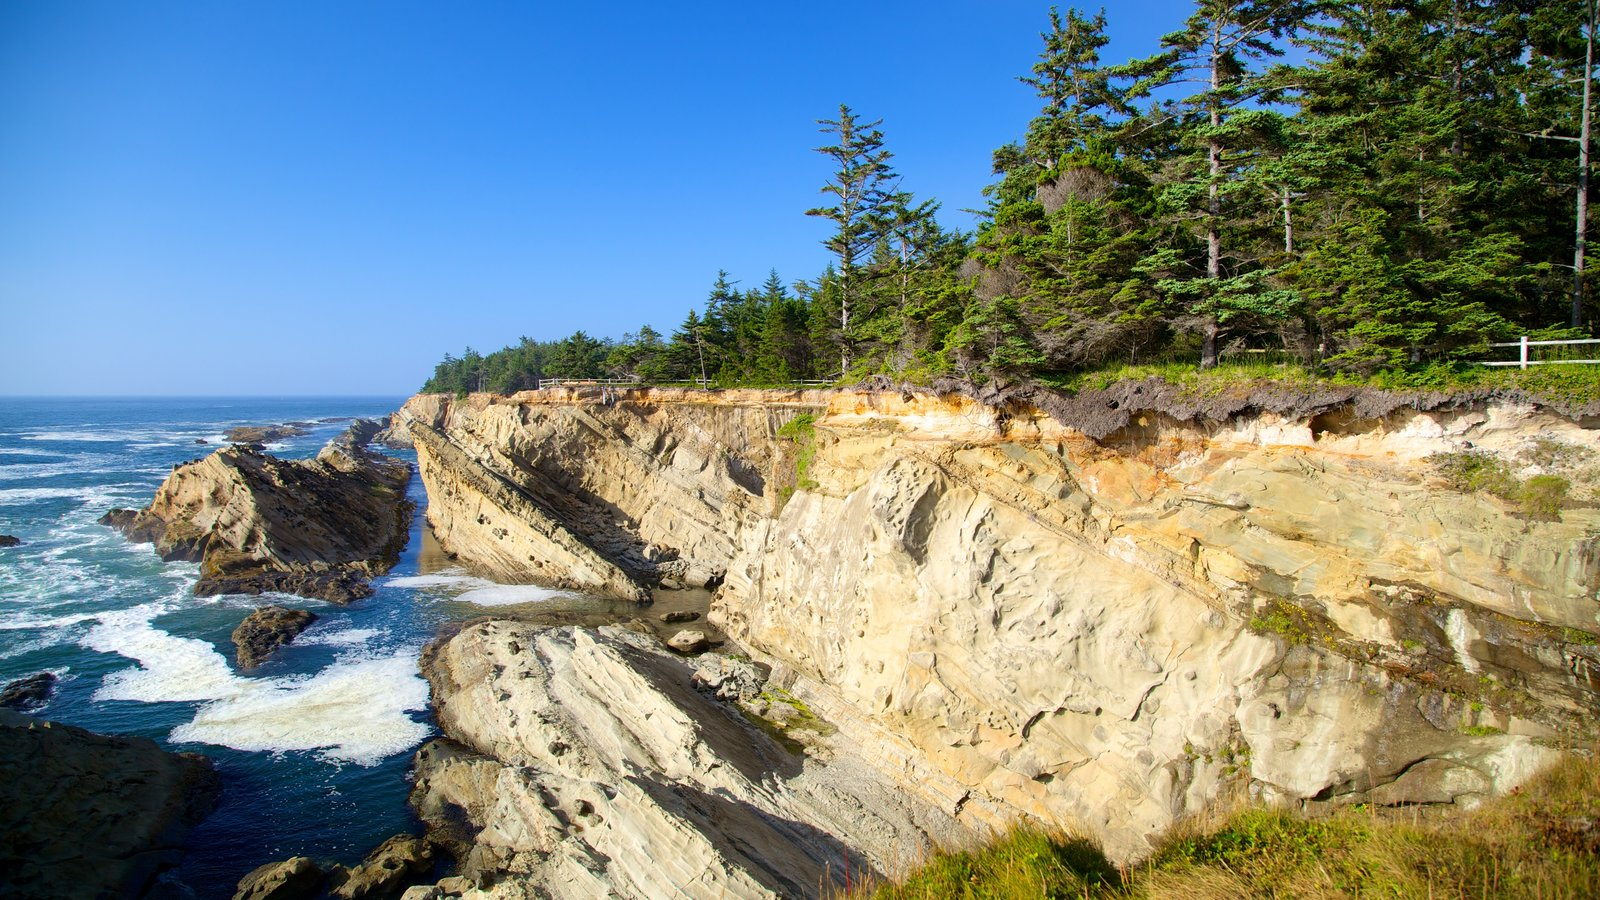 Shore Acres State Park which includes rugged coastline and landscape views